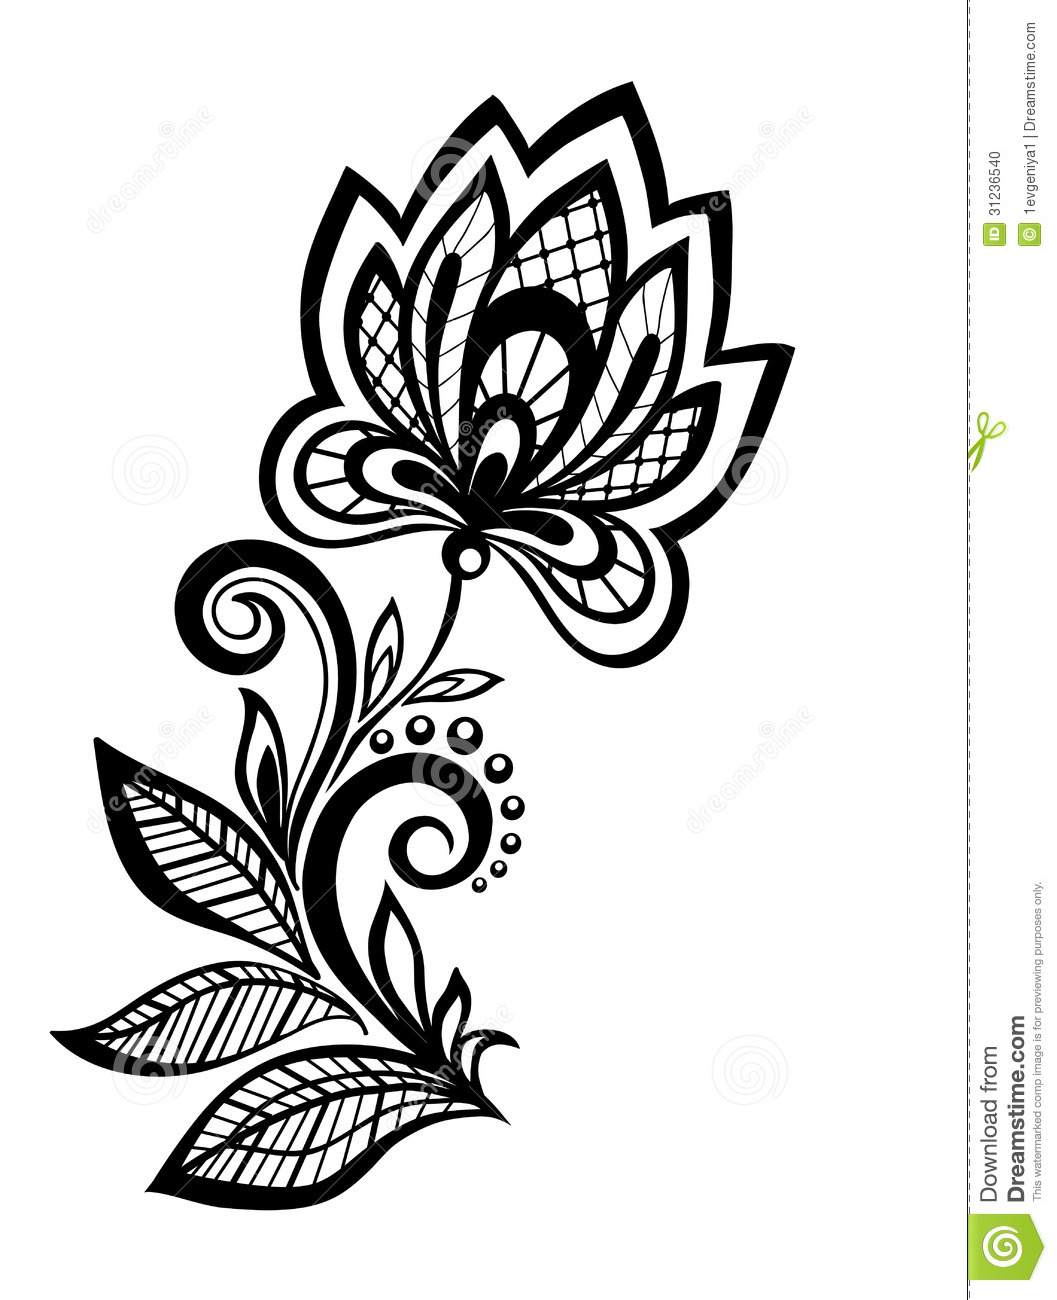 Black And White Floral Pattern Design Element Stock Vector Illustration Of Fashion Image 31236540,Easy Black And White Simple Flower Design